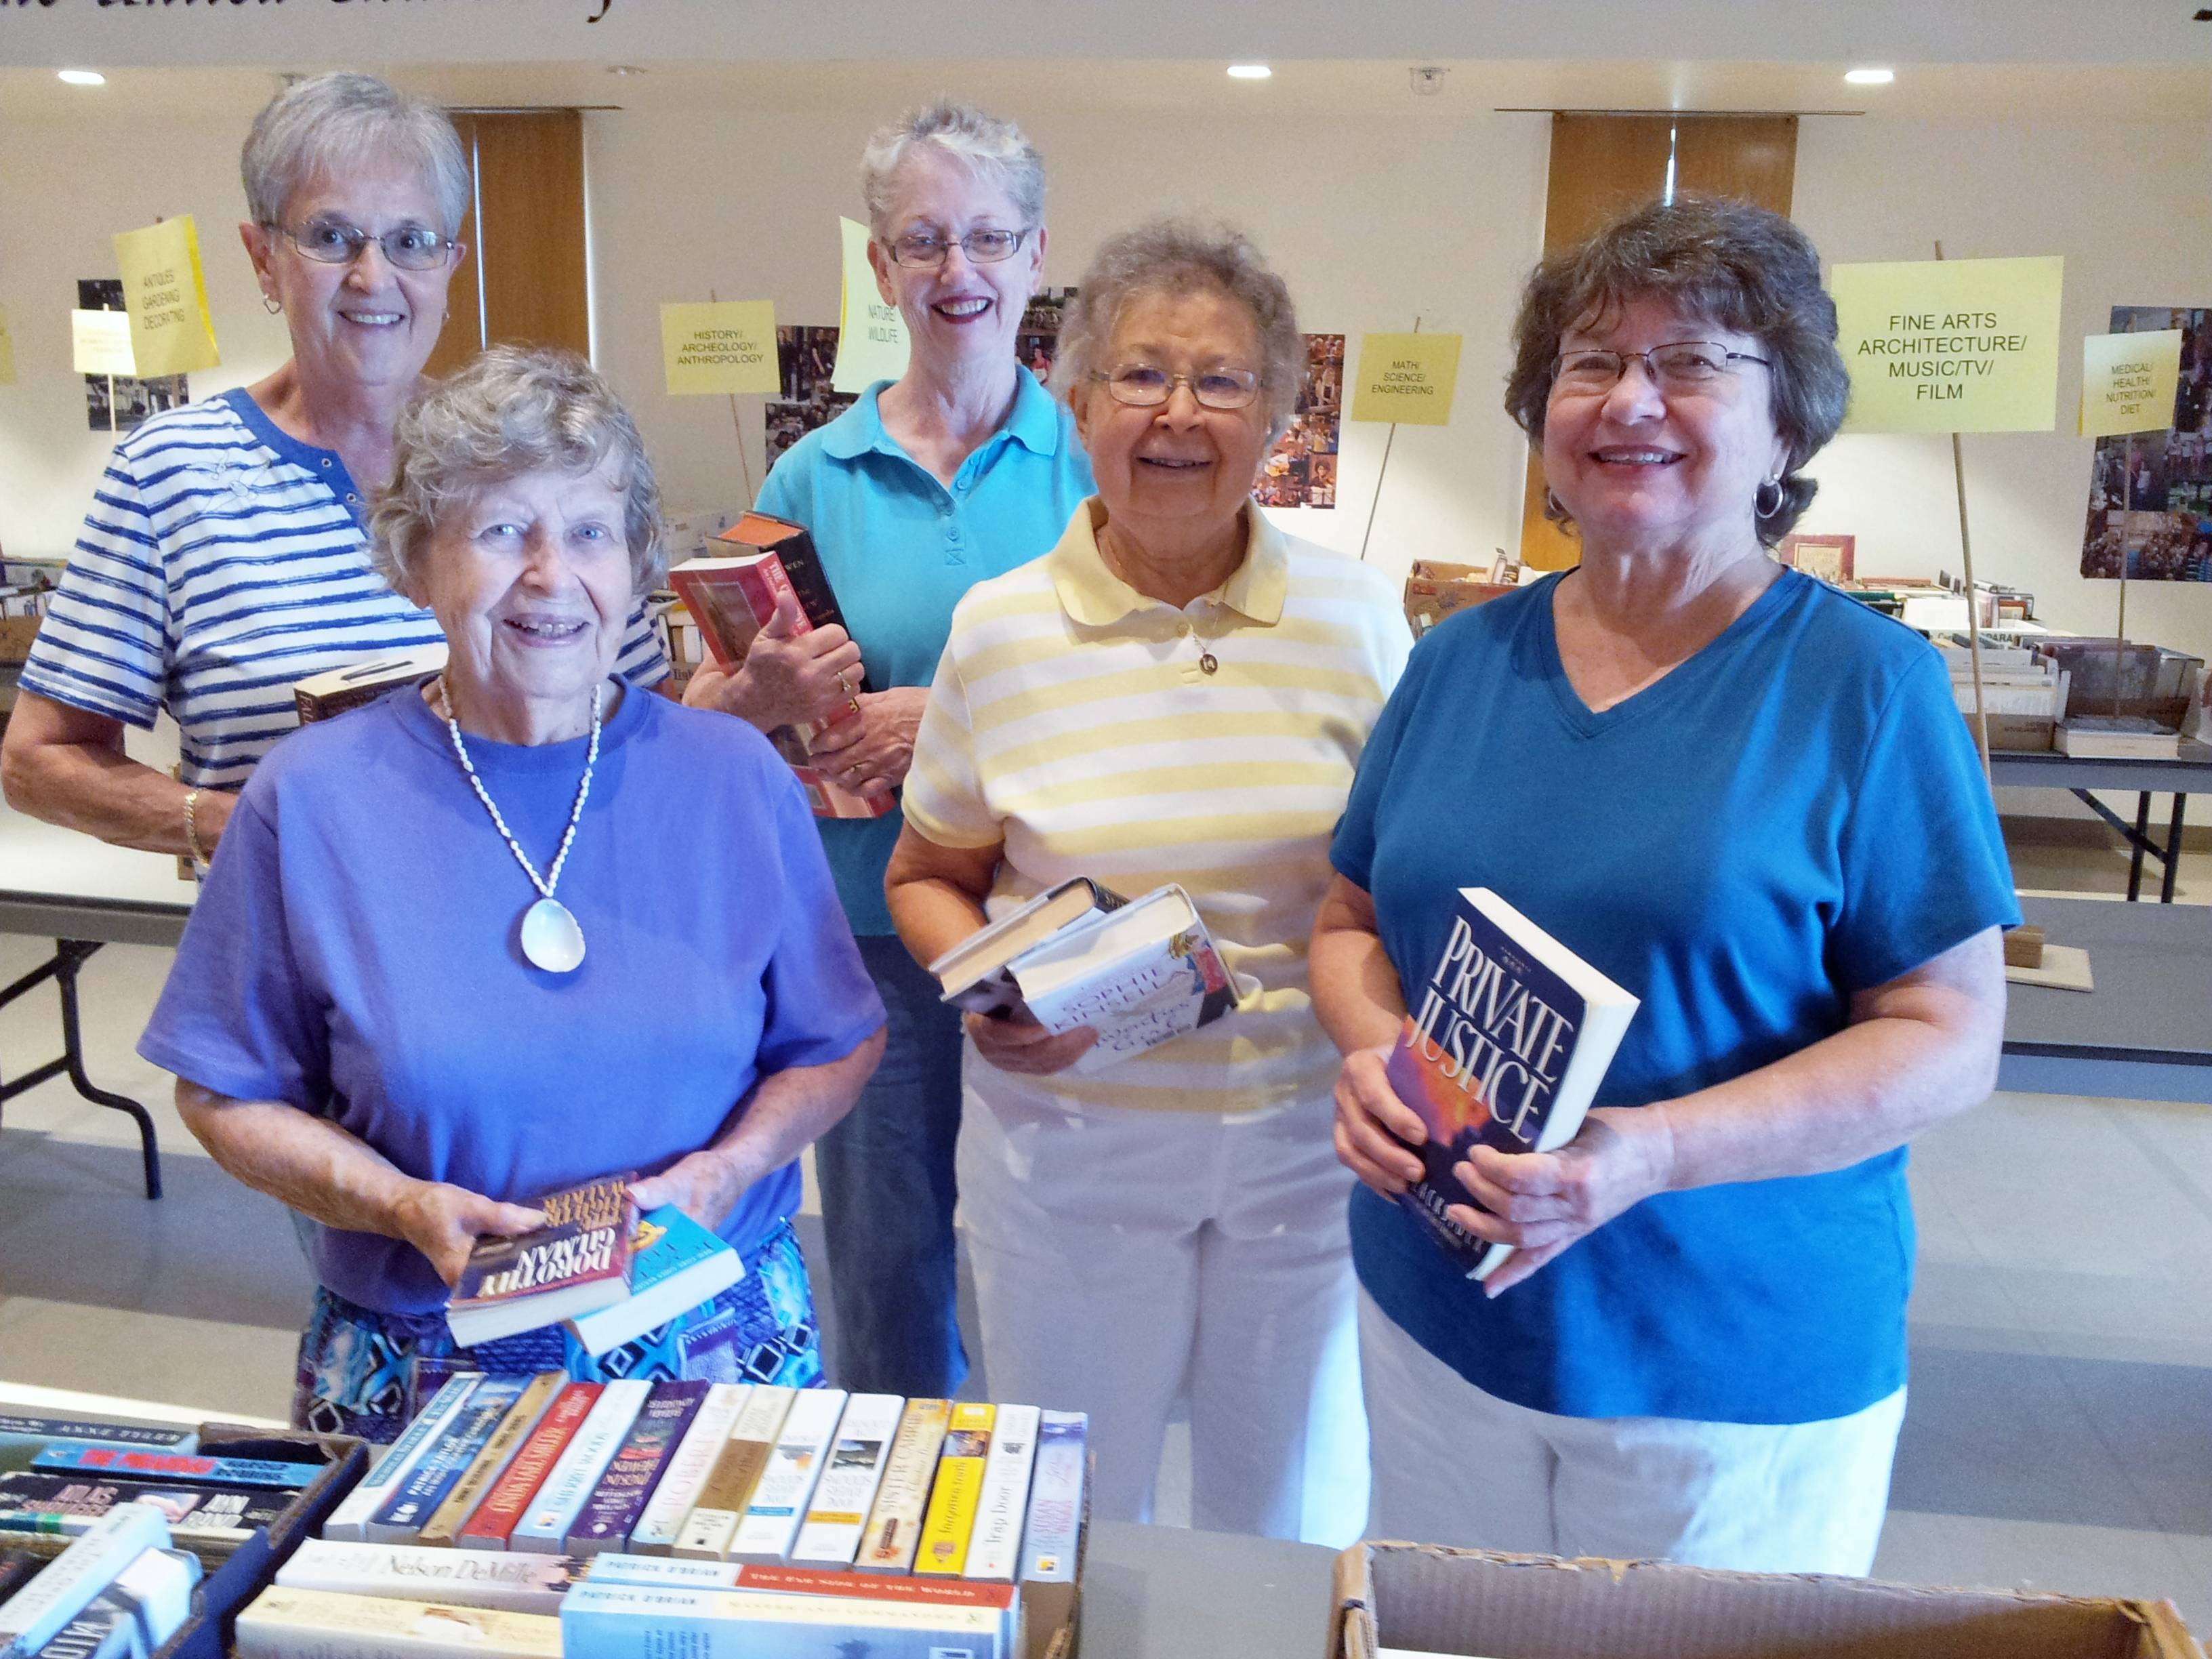 Members of the Lombard Area AAUW sort books at First Church of Lombard for our annual book sale. Back row - Carol Hester, Betsy Swinson; front row - Billie Jean Shapotkin, Mary Ann Grady, Lynda Campo